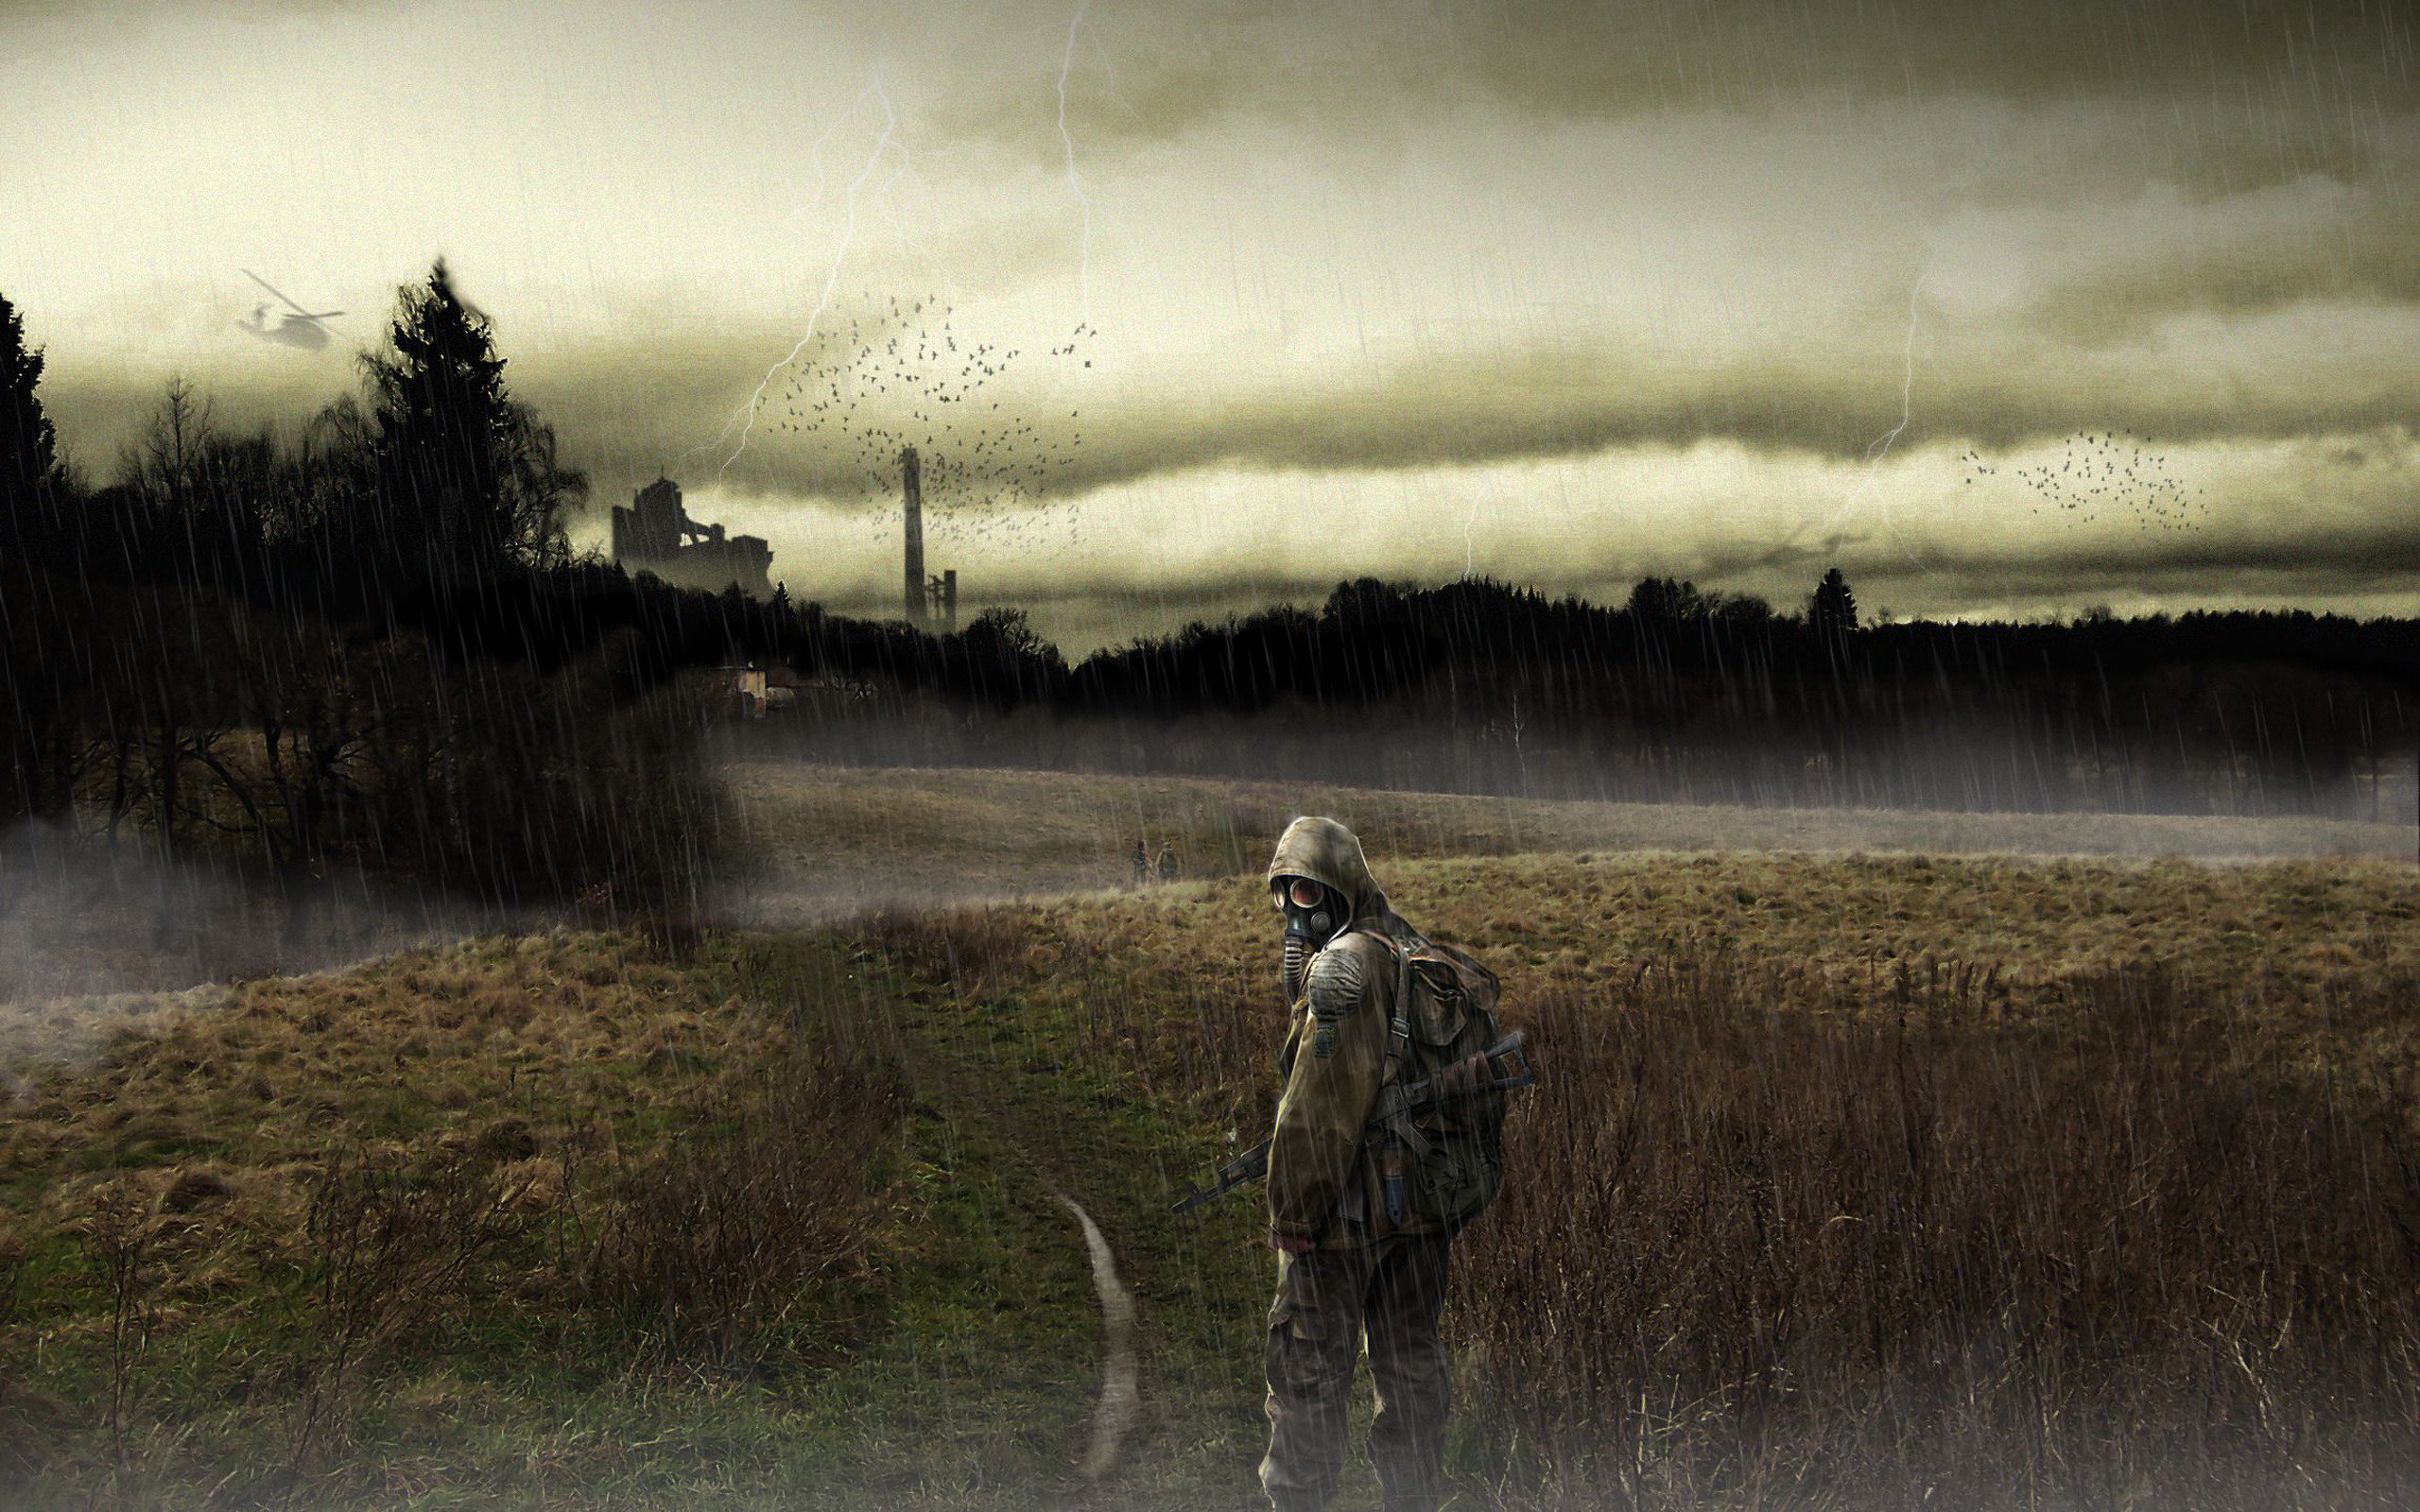 Stalker Wallpaper Dump 2560x1600 Download Hd Wallpaper Wallpapertip